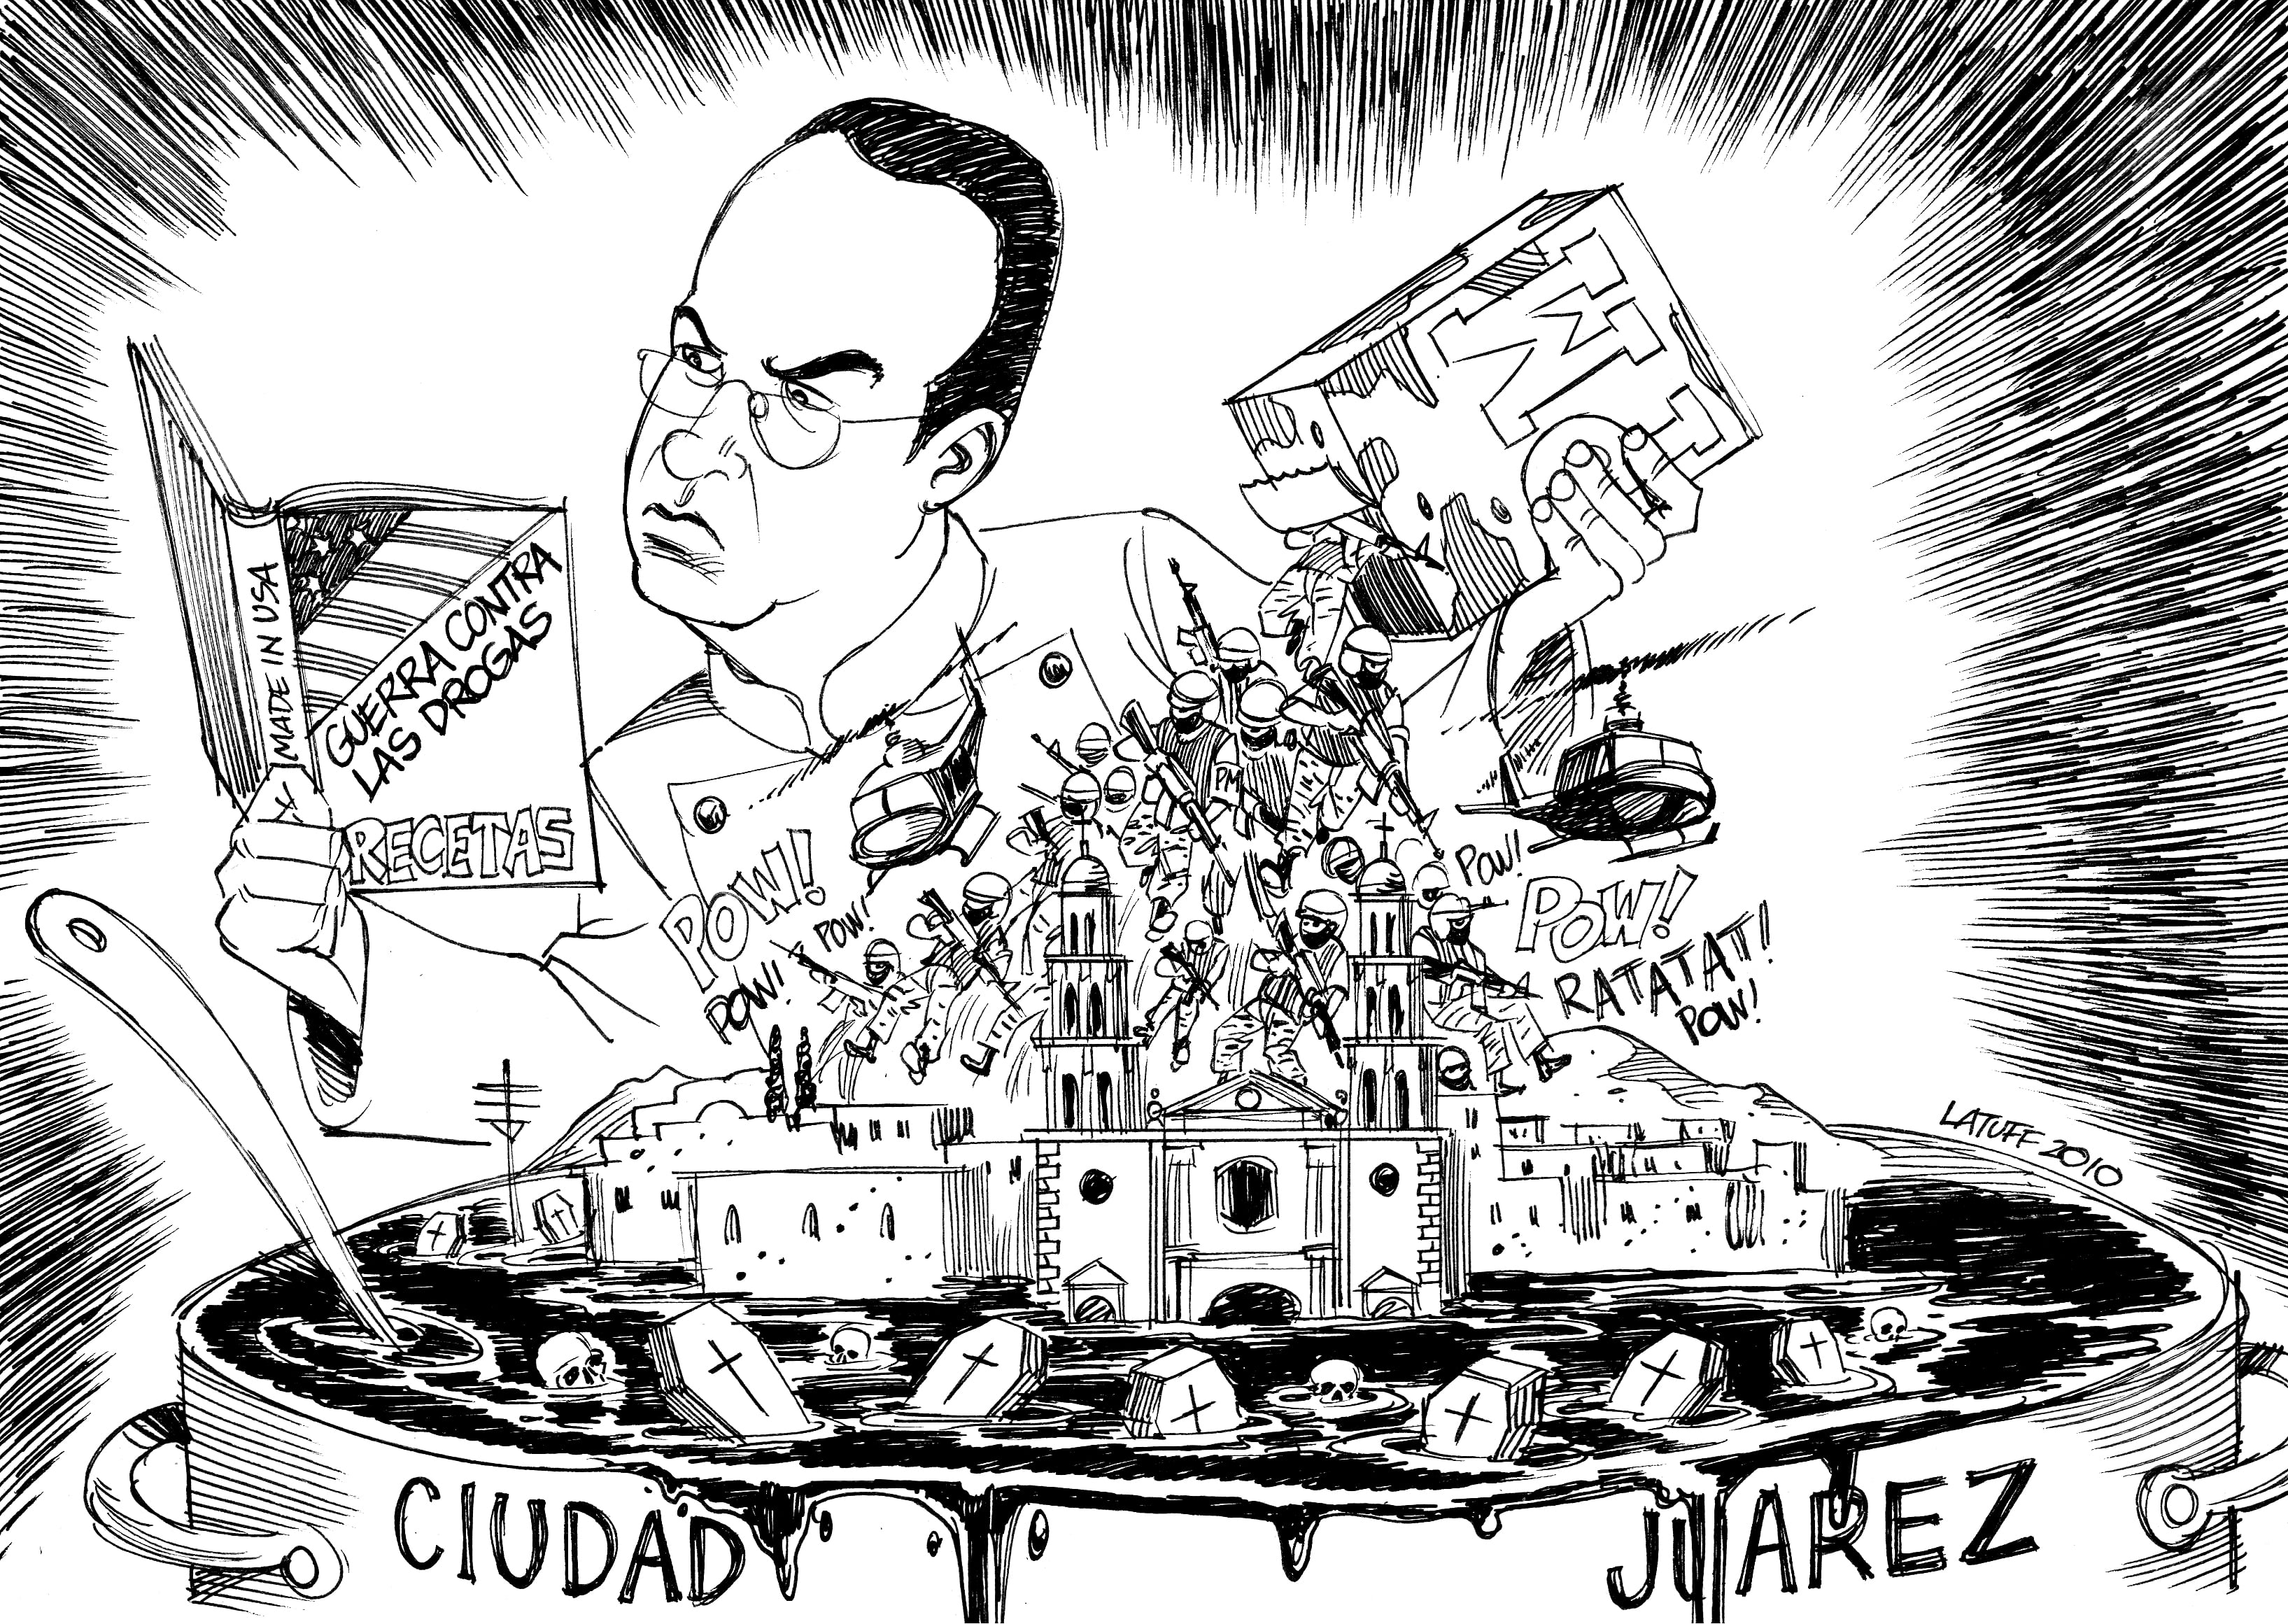 Mexico: Felipe Calderón's War on Drugs